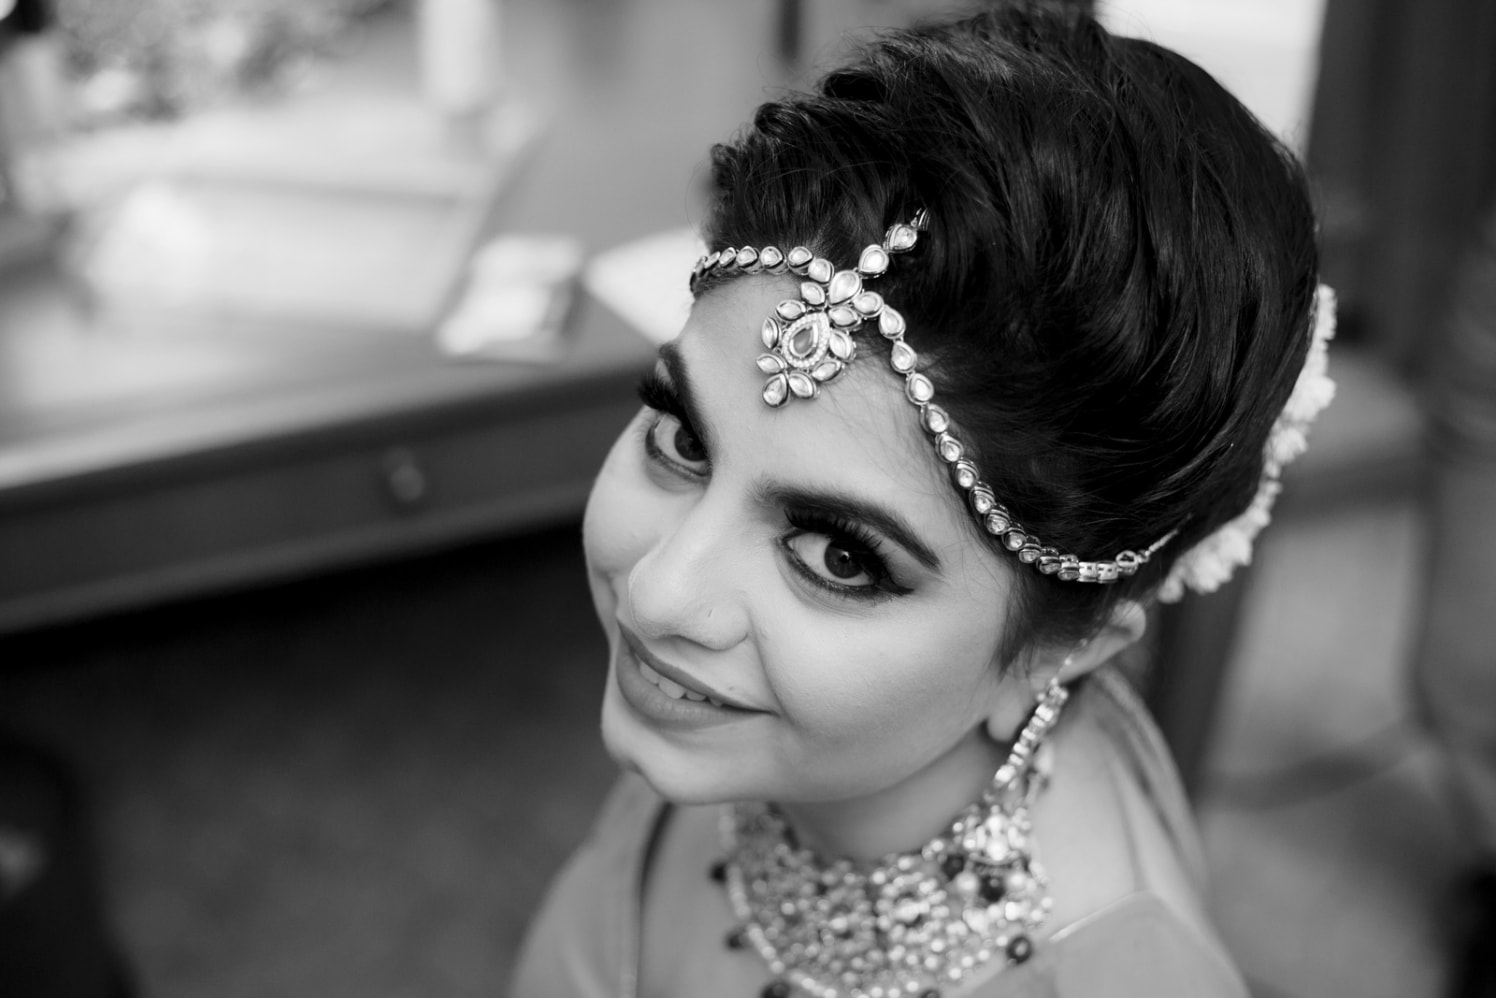 Ravishing Bride Smiling On Her Big Day by Arpit Gulati Wedding-photography | Weddings Photos & Ideas